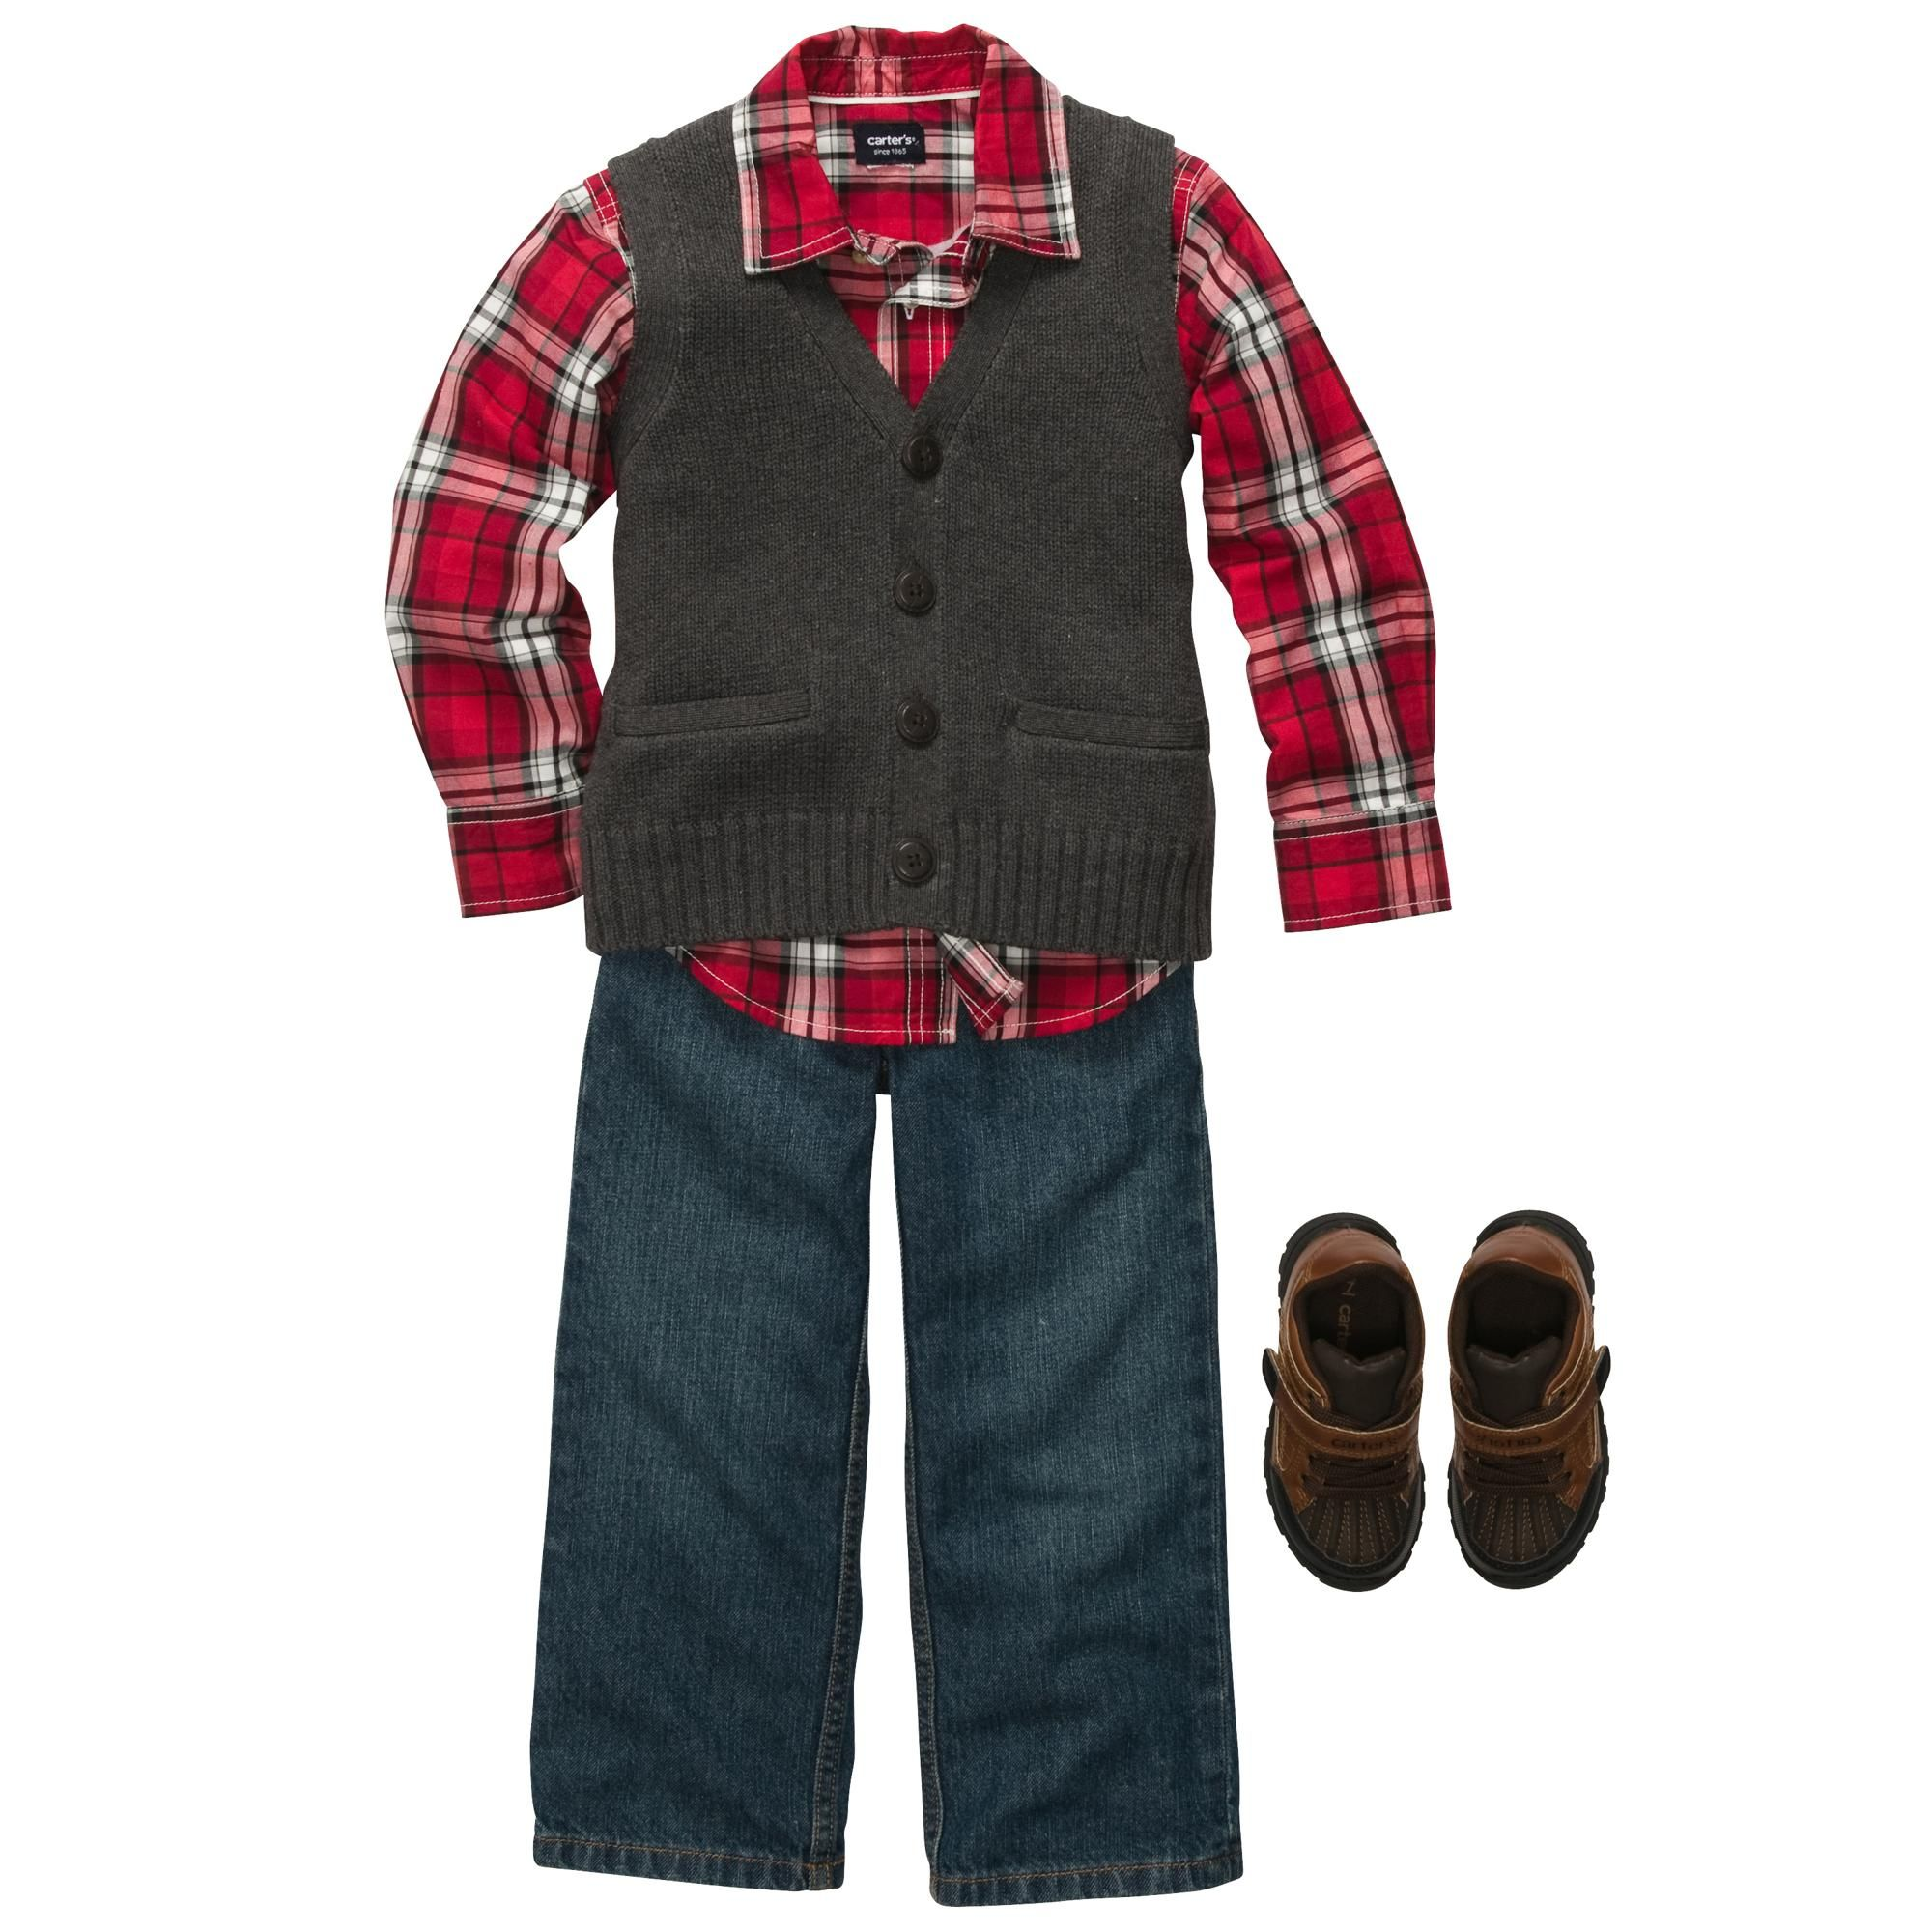 Boys Clothes: Featured Outfits Outfits We Love | Old Navy | For my ...